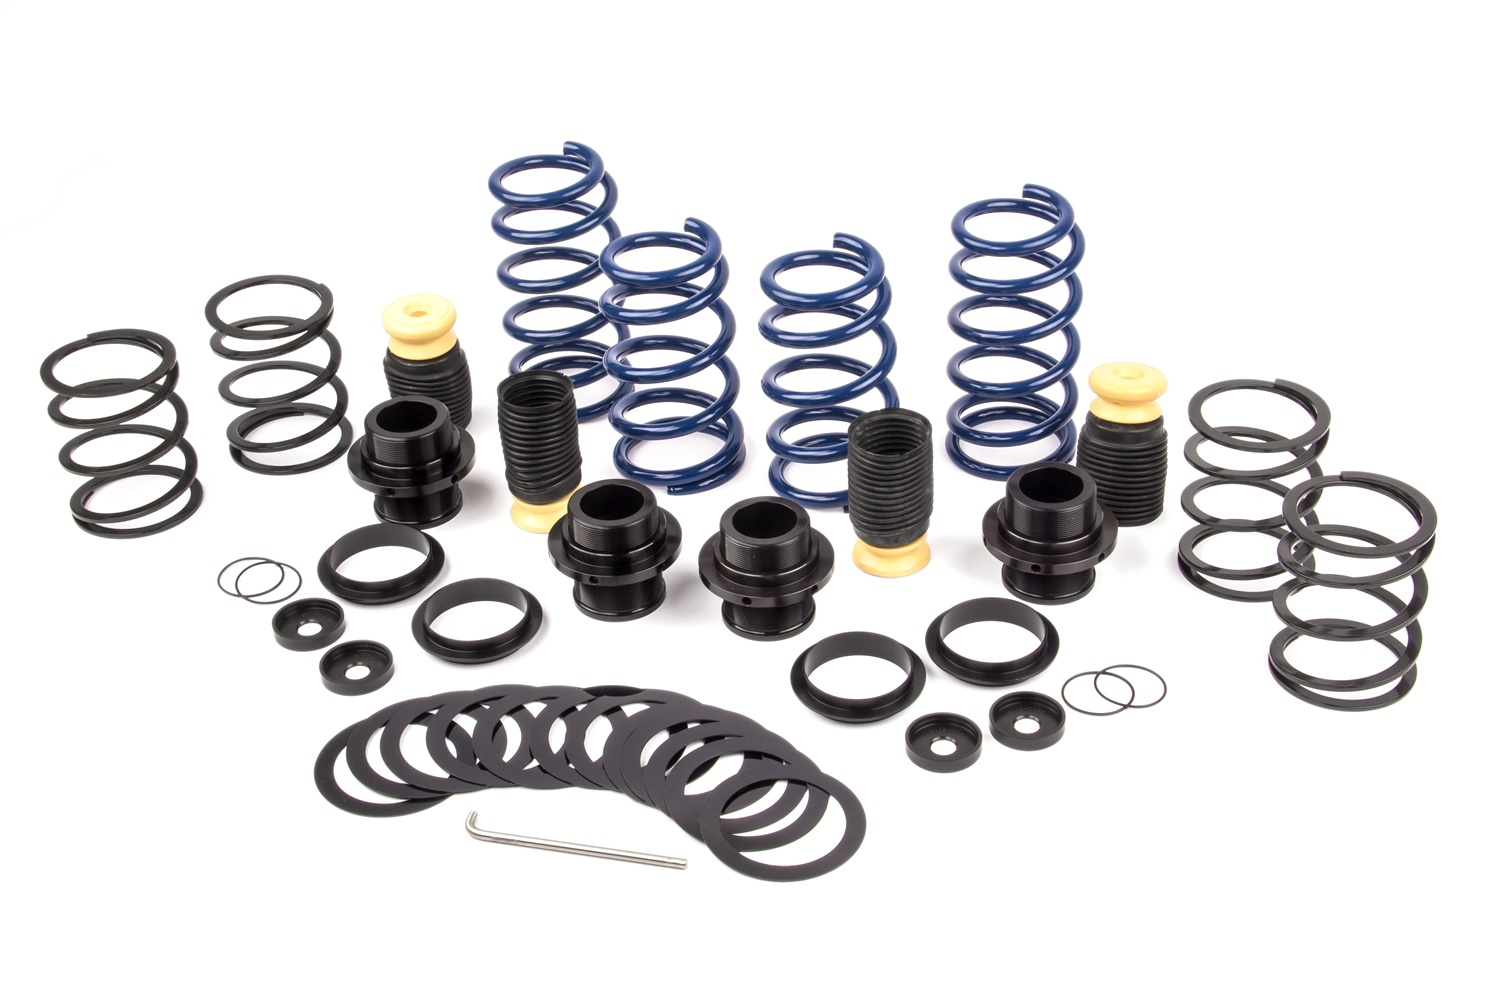 Dinan D190-0901 Coilover Spring Lowering Kit Fits 18-19 M5